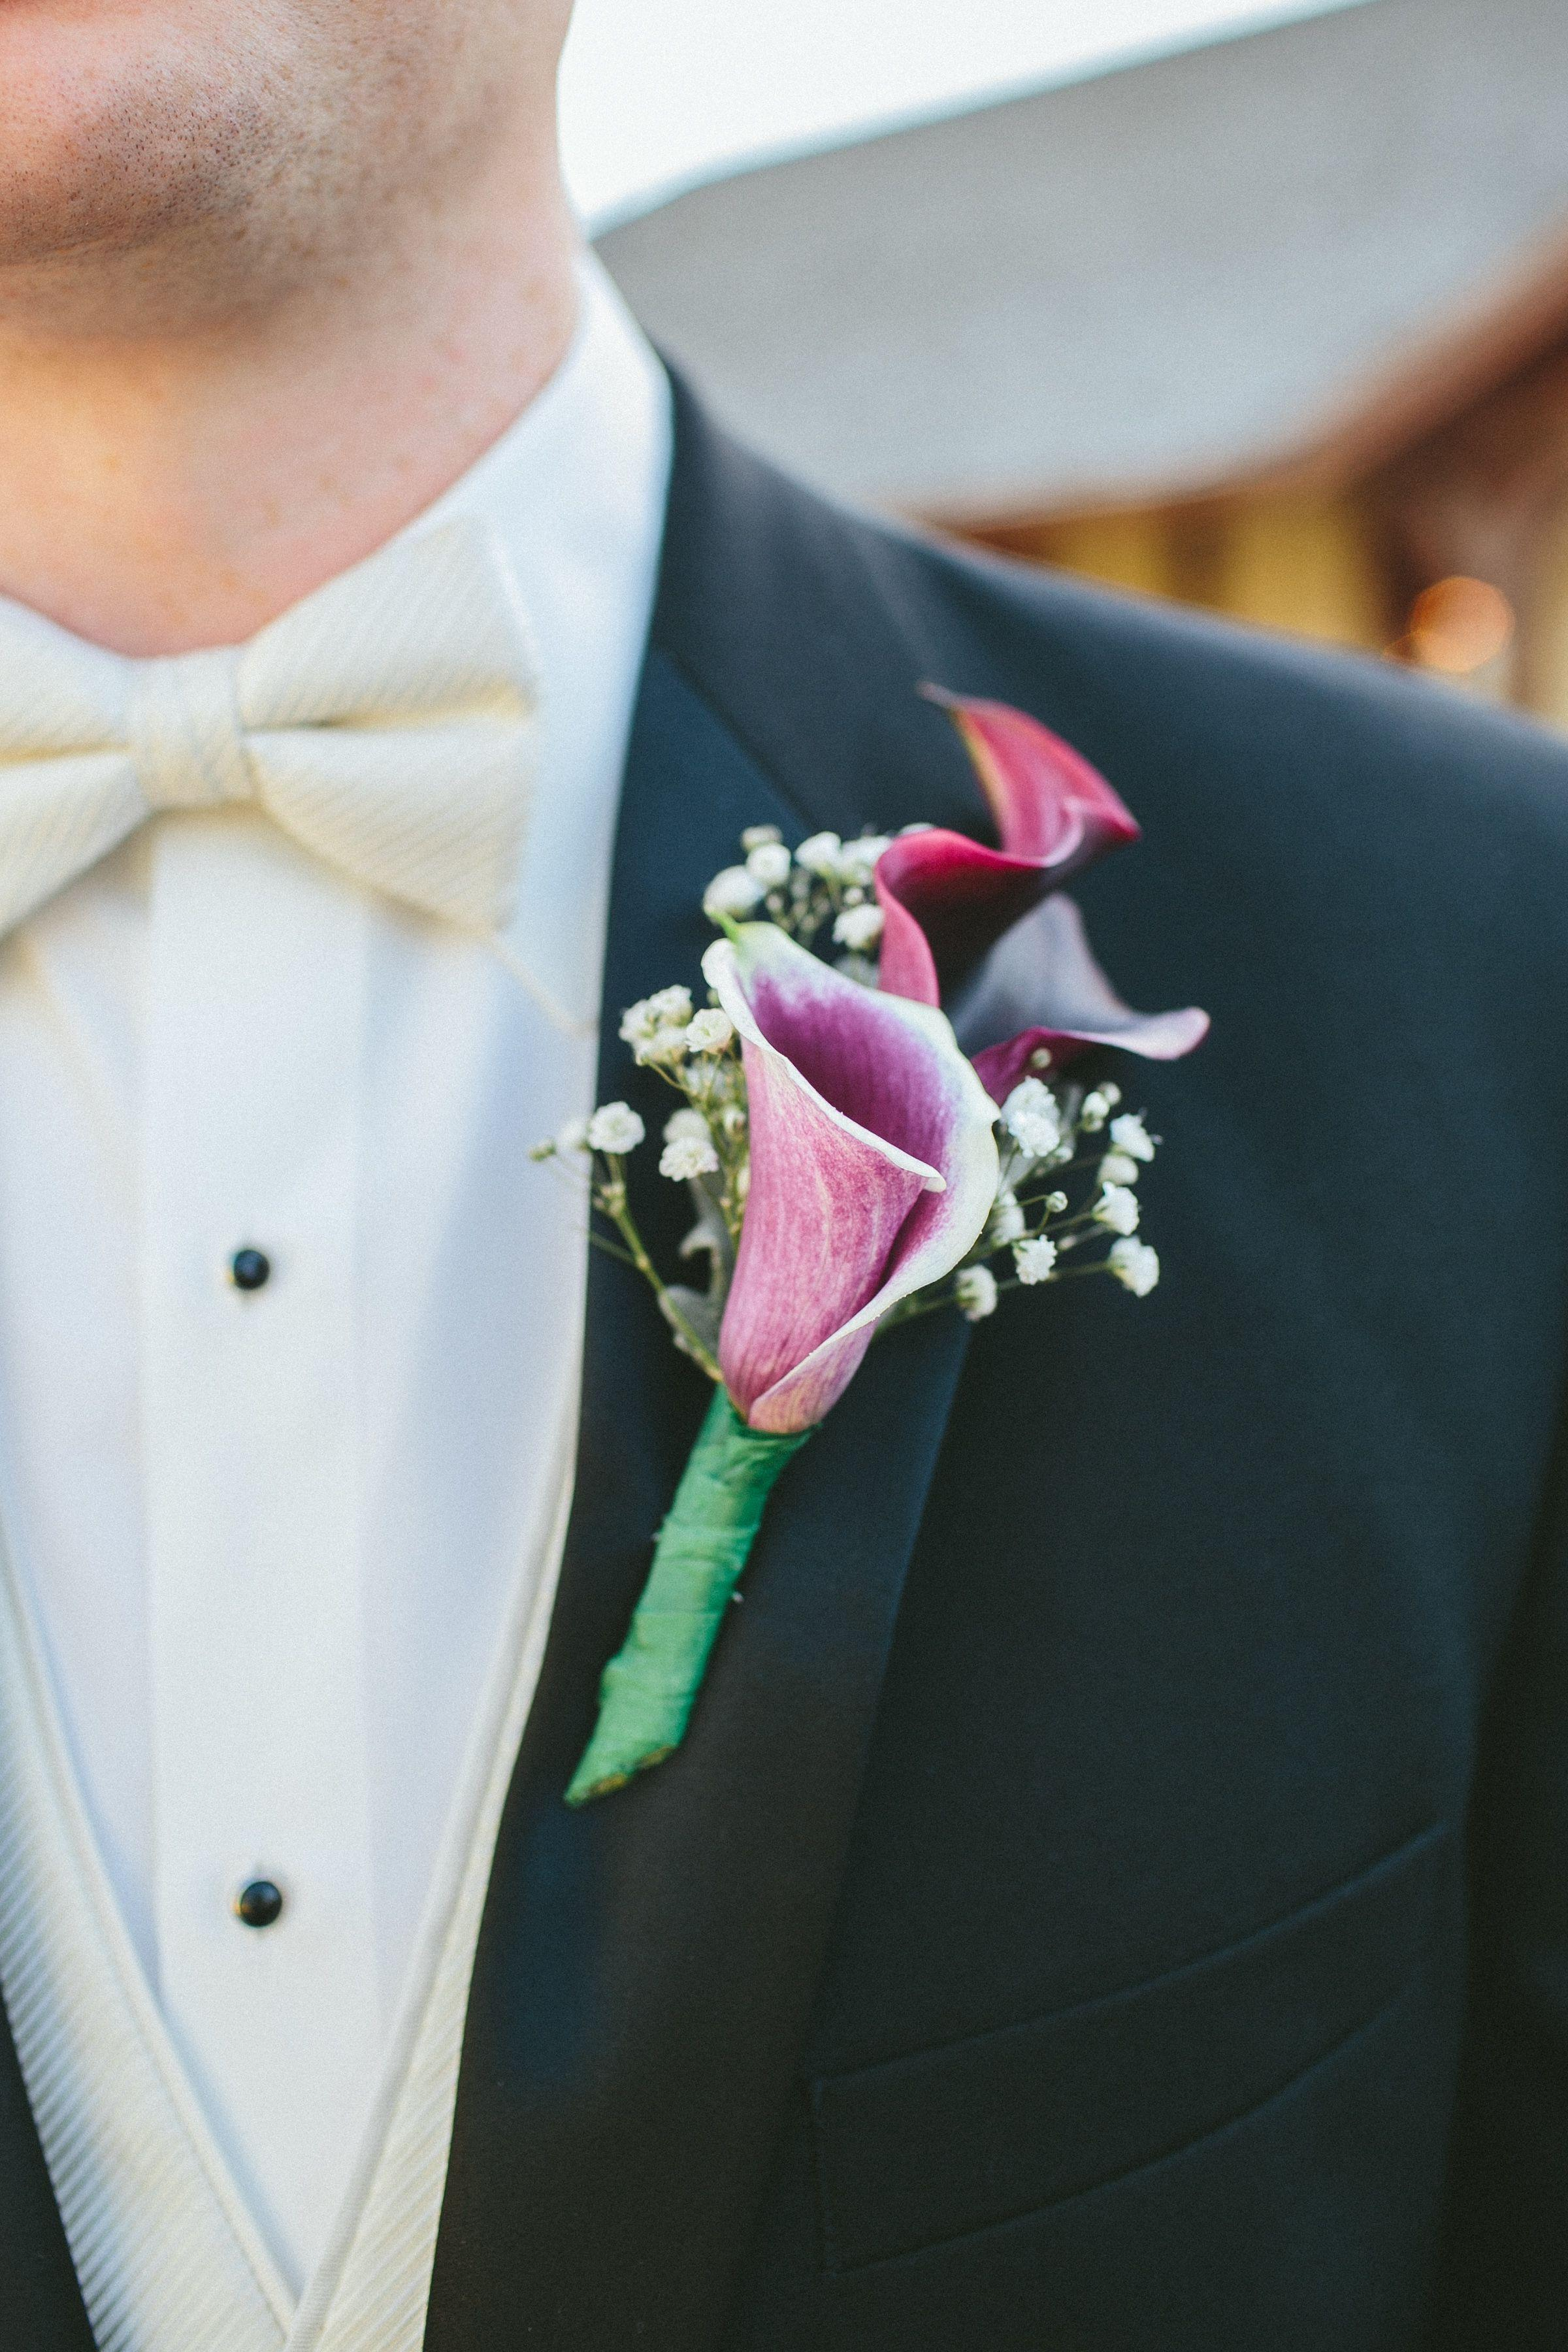 The Best Picasso Calla Lily Boutonniere Pictures